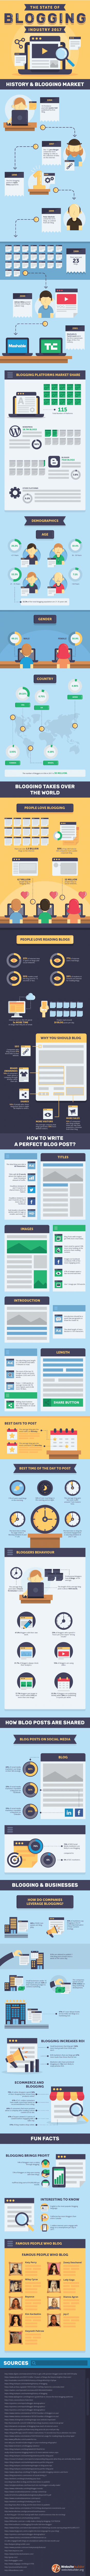 Infographic about the current state of blogging industry and what are the current trends.